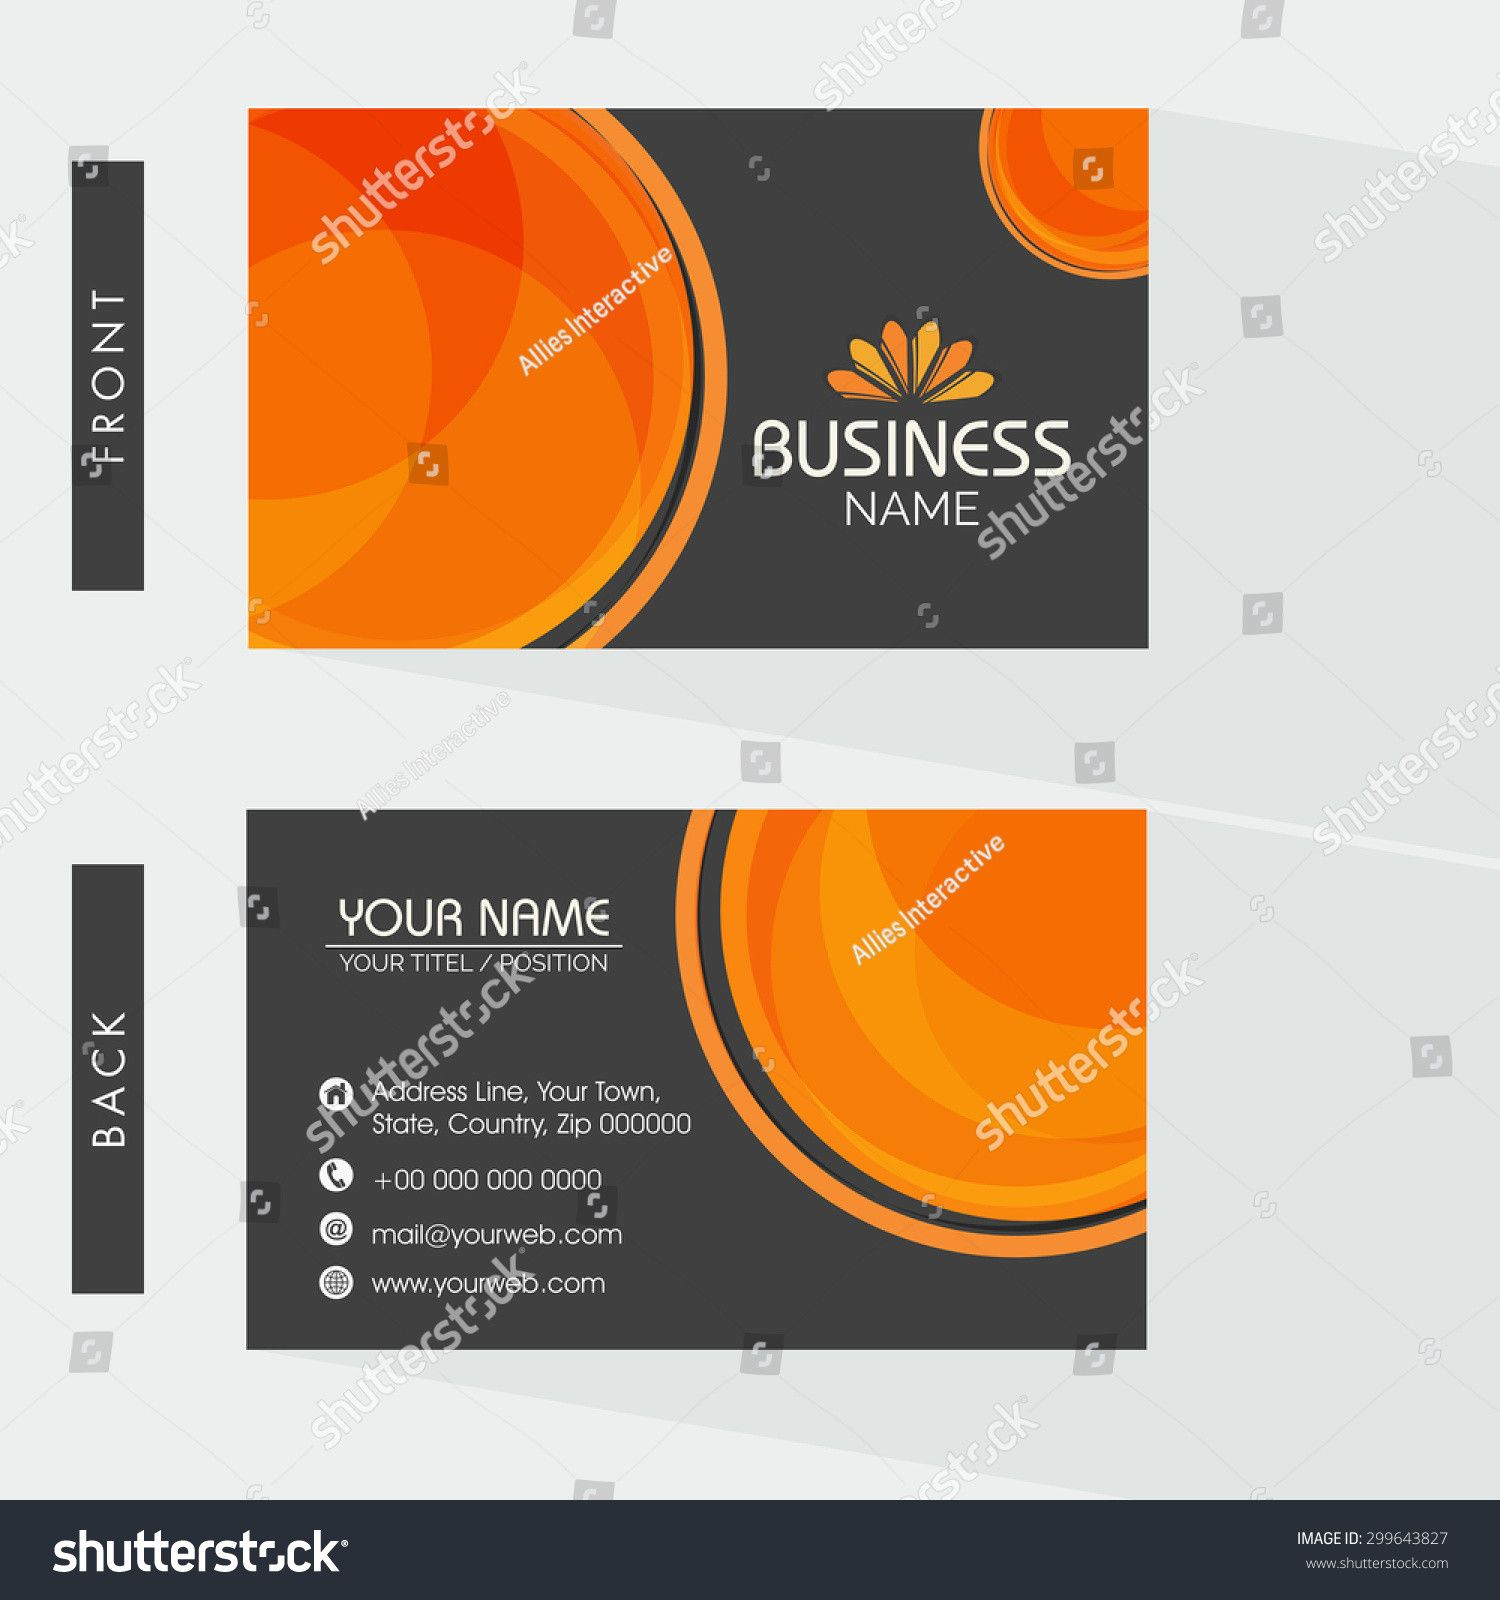 2 Sided Business Card Template Word Business Card Template Word Business Card Template Make Business Cards